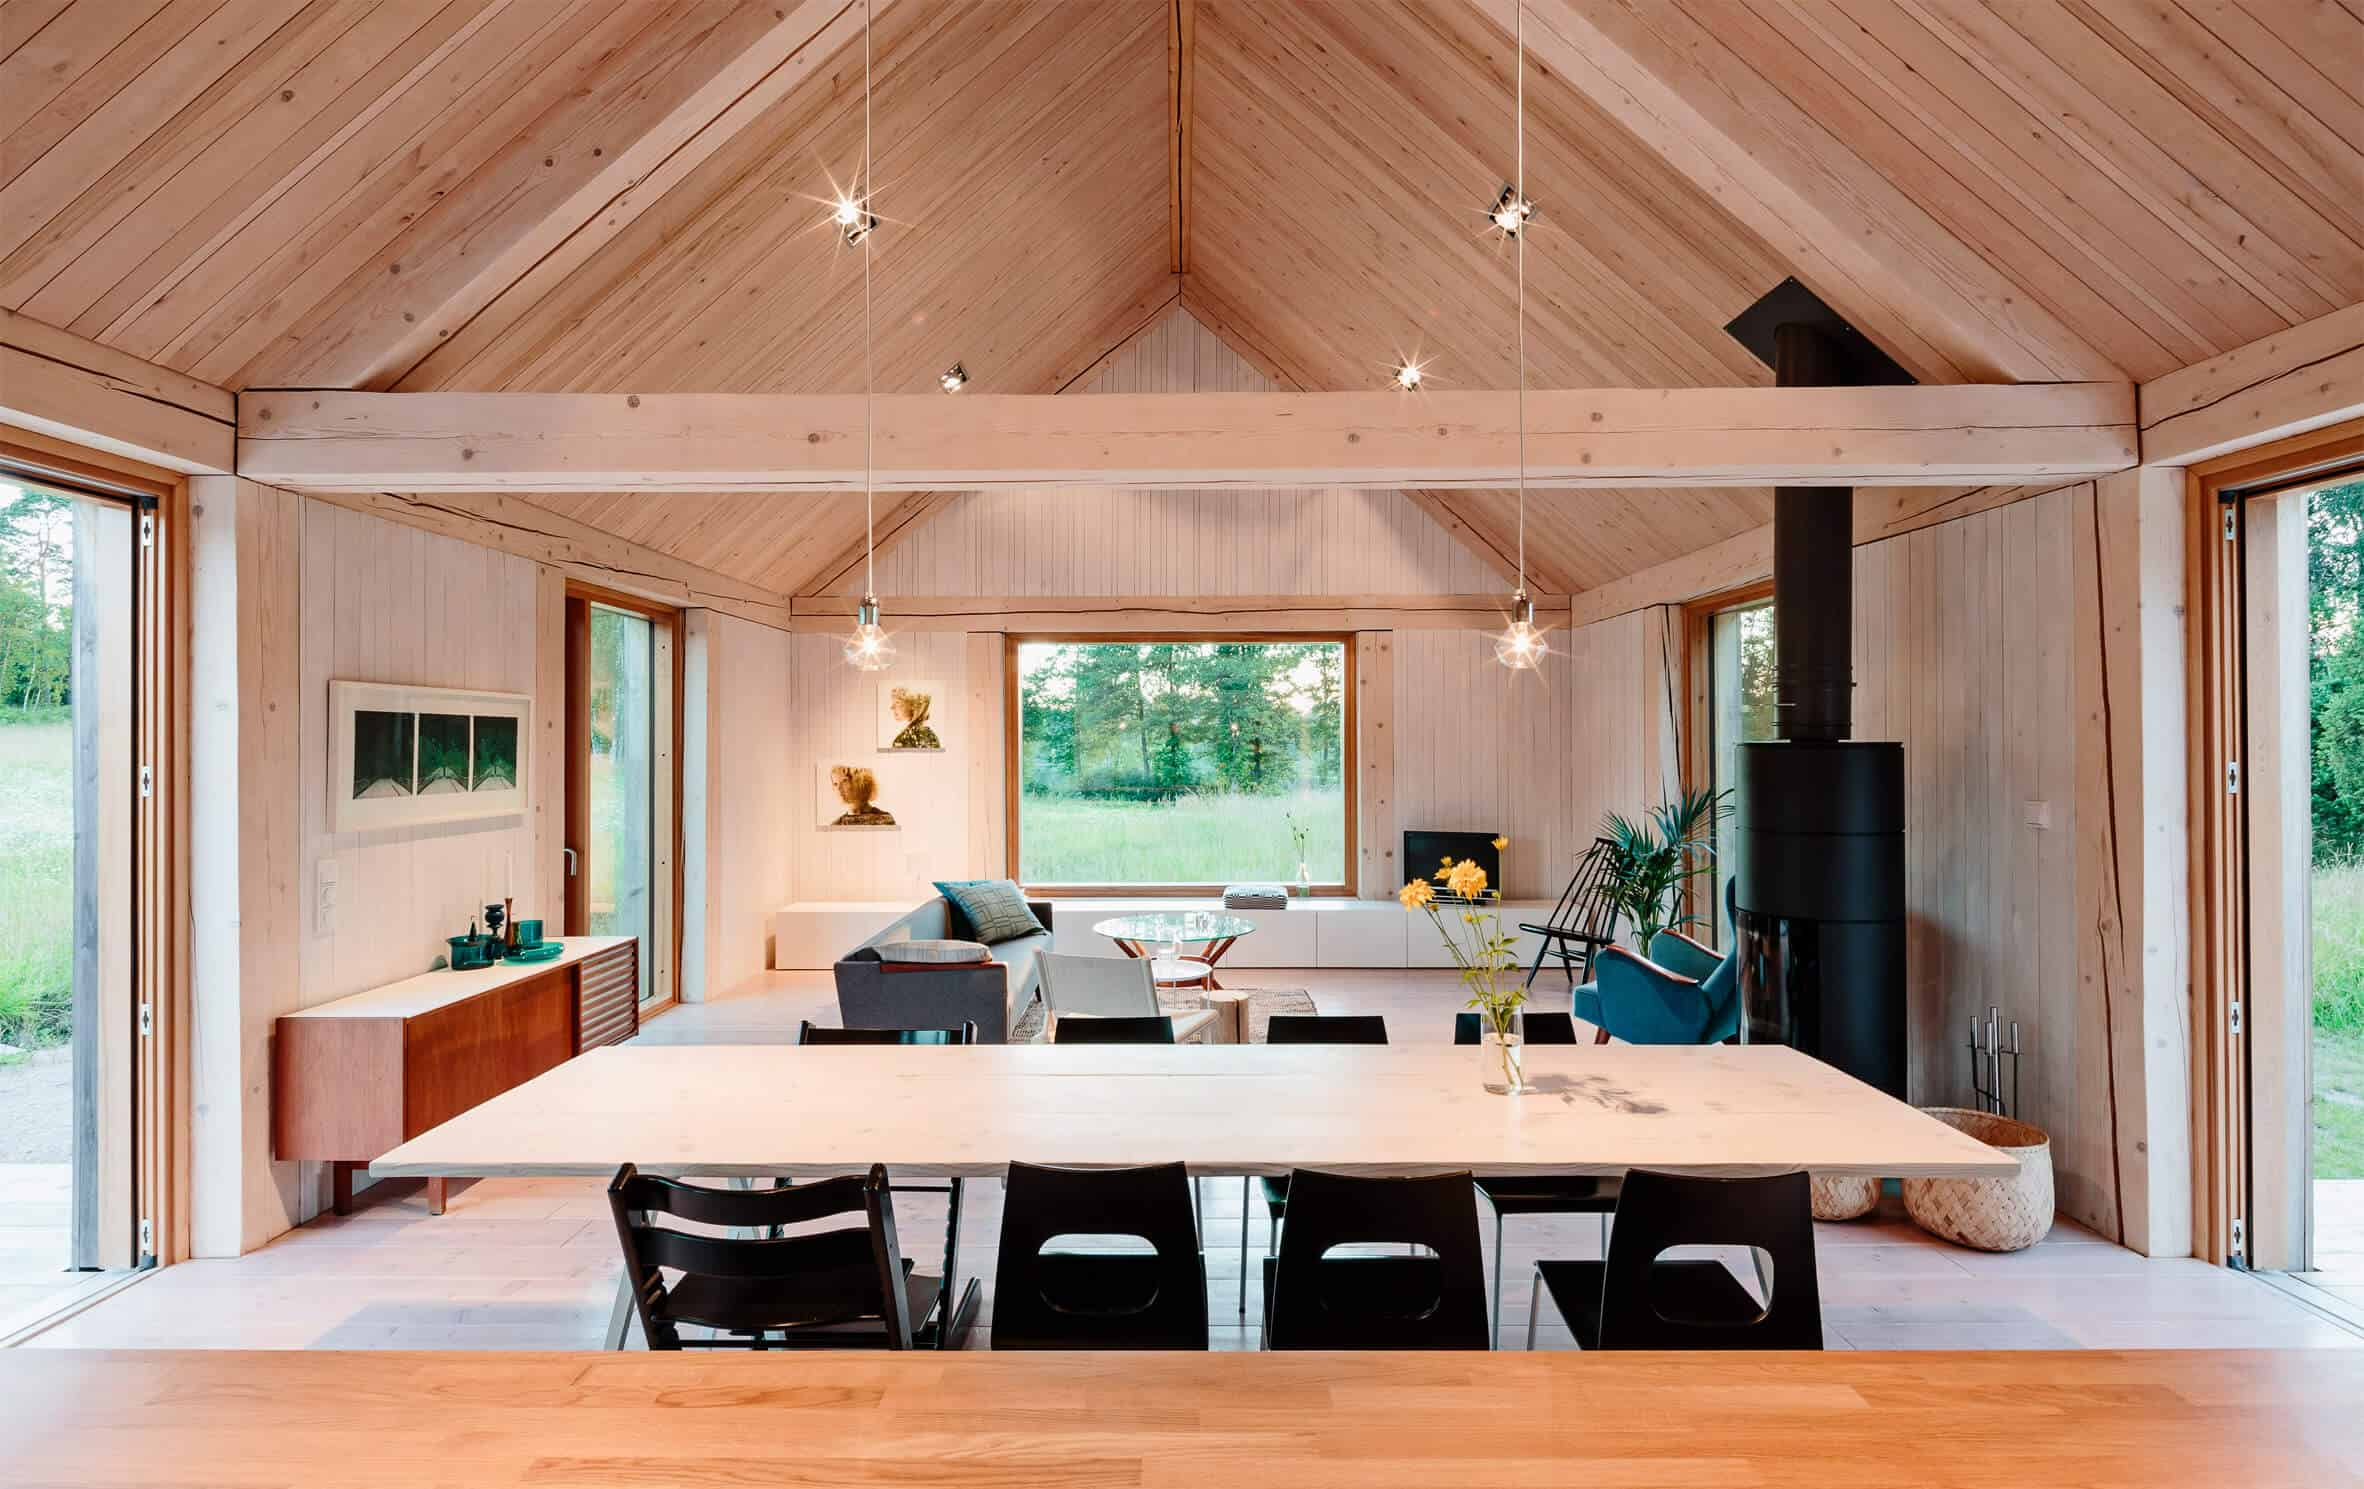 Iconic Simplicity in a Finnish LakeHouse by MNy Arkitekter (8)